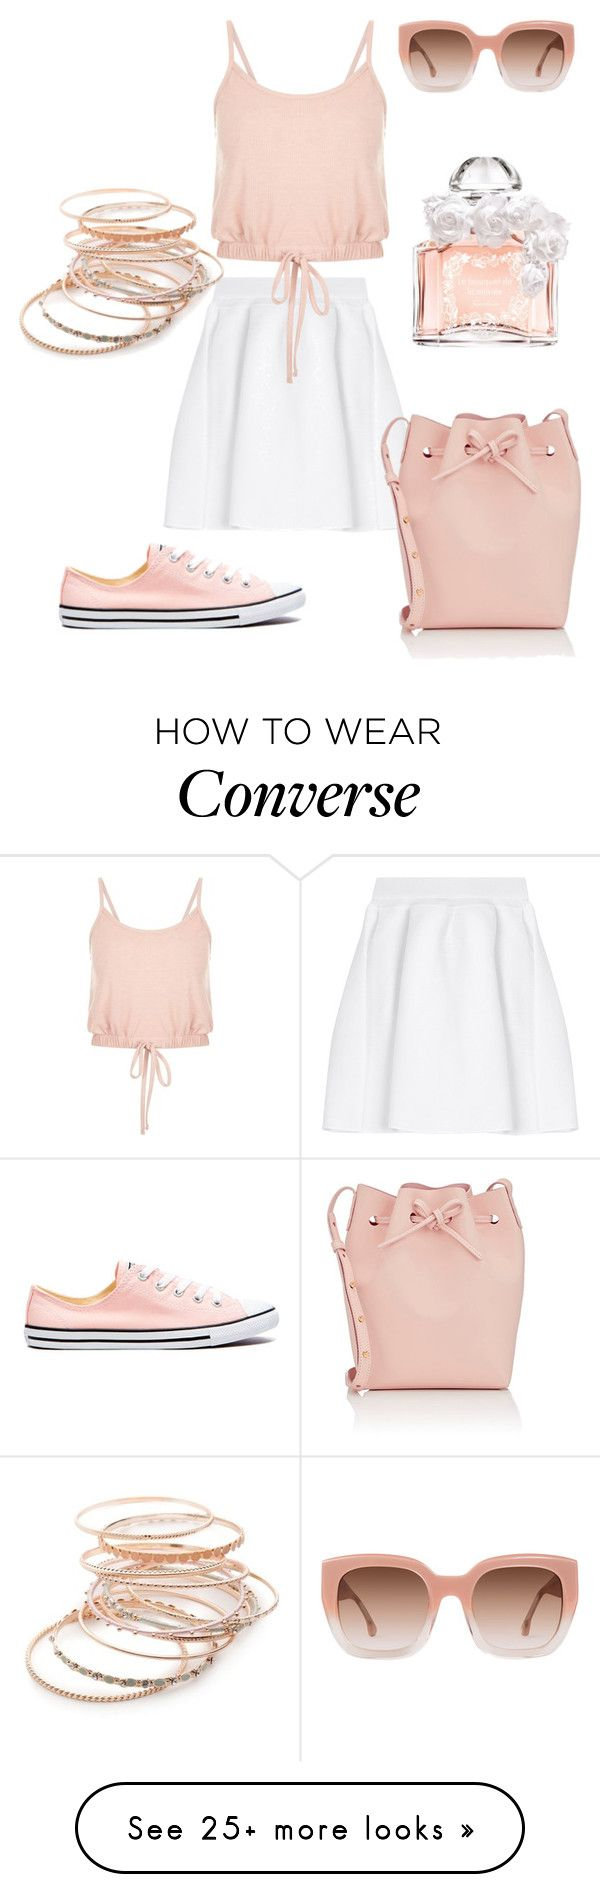 """Untitled #517"" by angelina-vanessa on Polyvore featuring malo, Mansur Gavriel, Guerlain, Alice + Olivia, Converse and Red Camel"